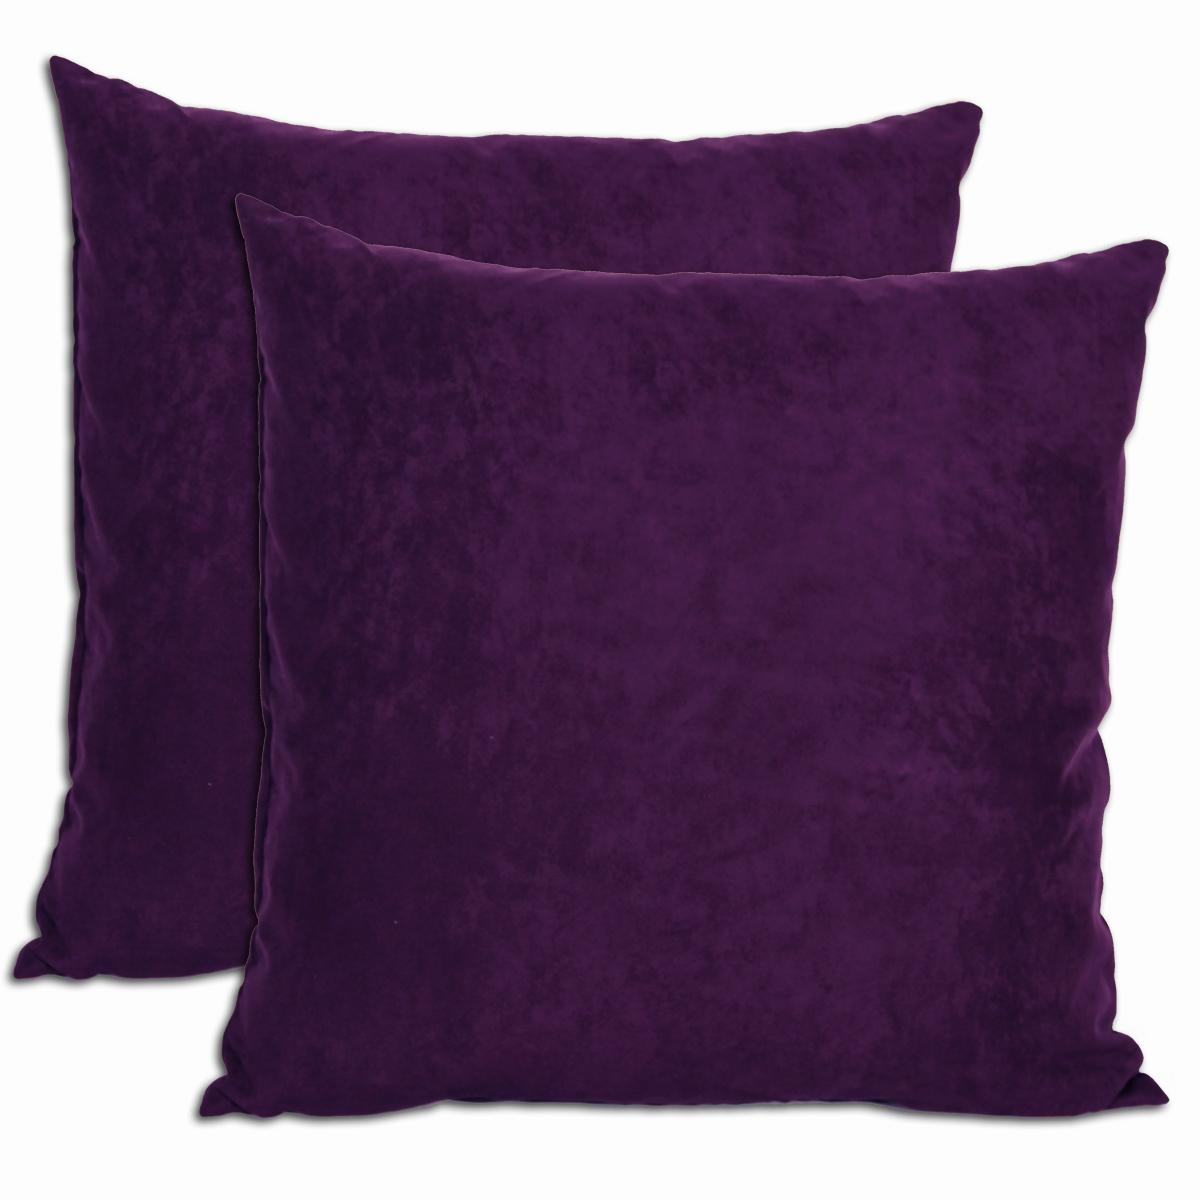 Purple Microsuede Feather and Down Filled Throw Pillows (Set of 2) - 13396307 - Overstock.com ...